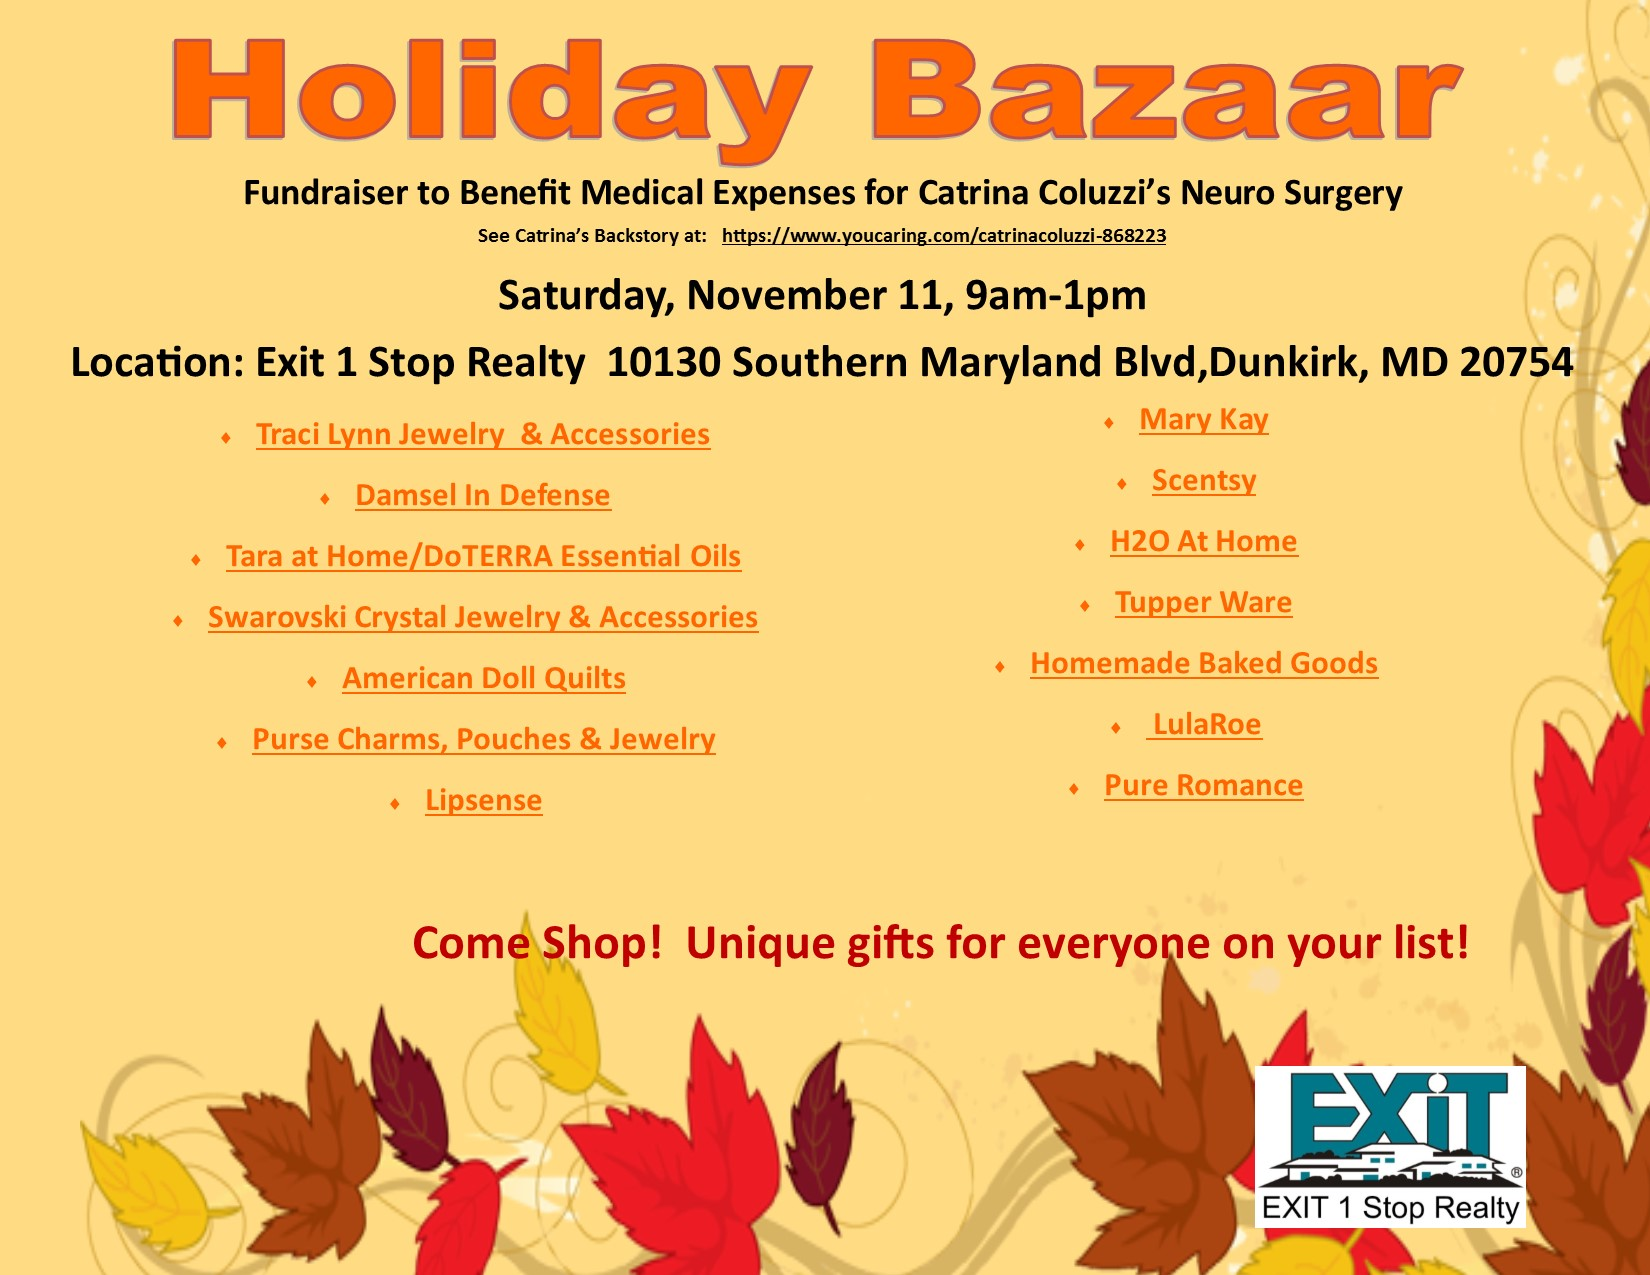 Holiday Bazaar Fundraiser- Saturday, November 11, 2017 9 am-1 pm